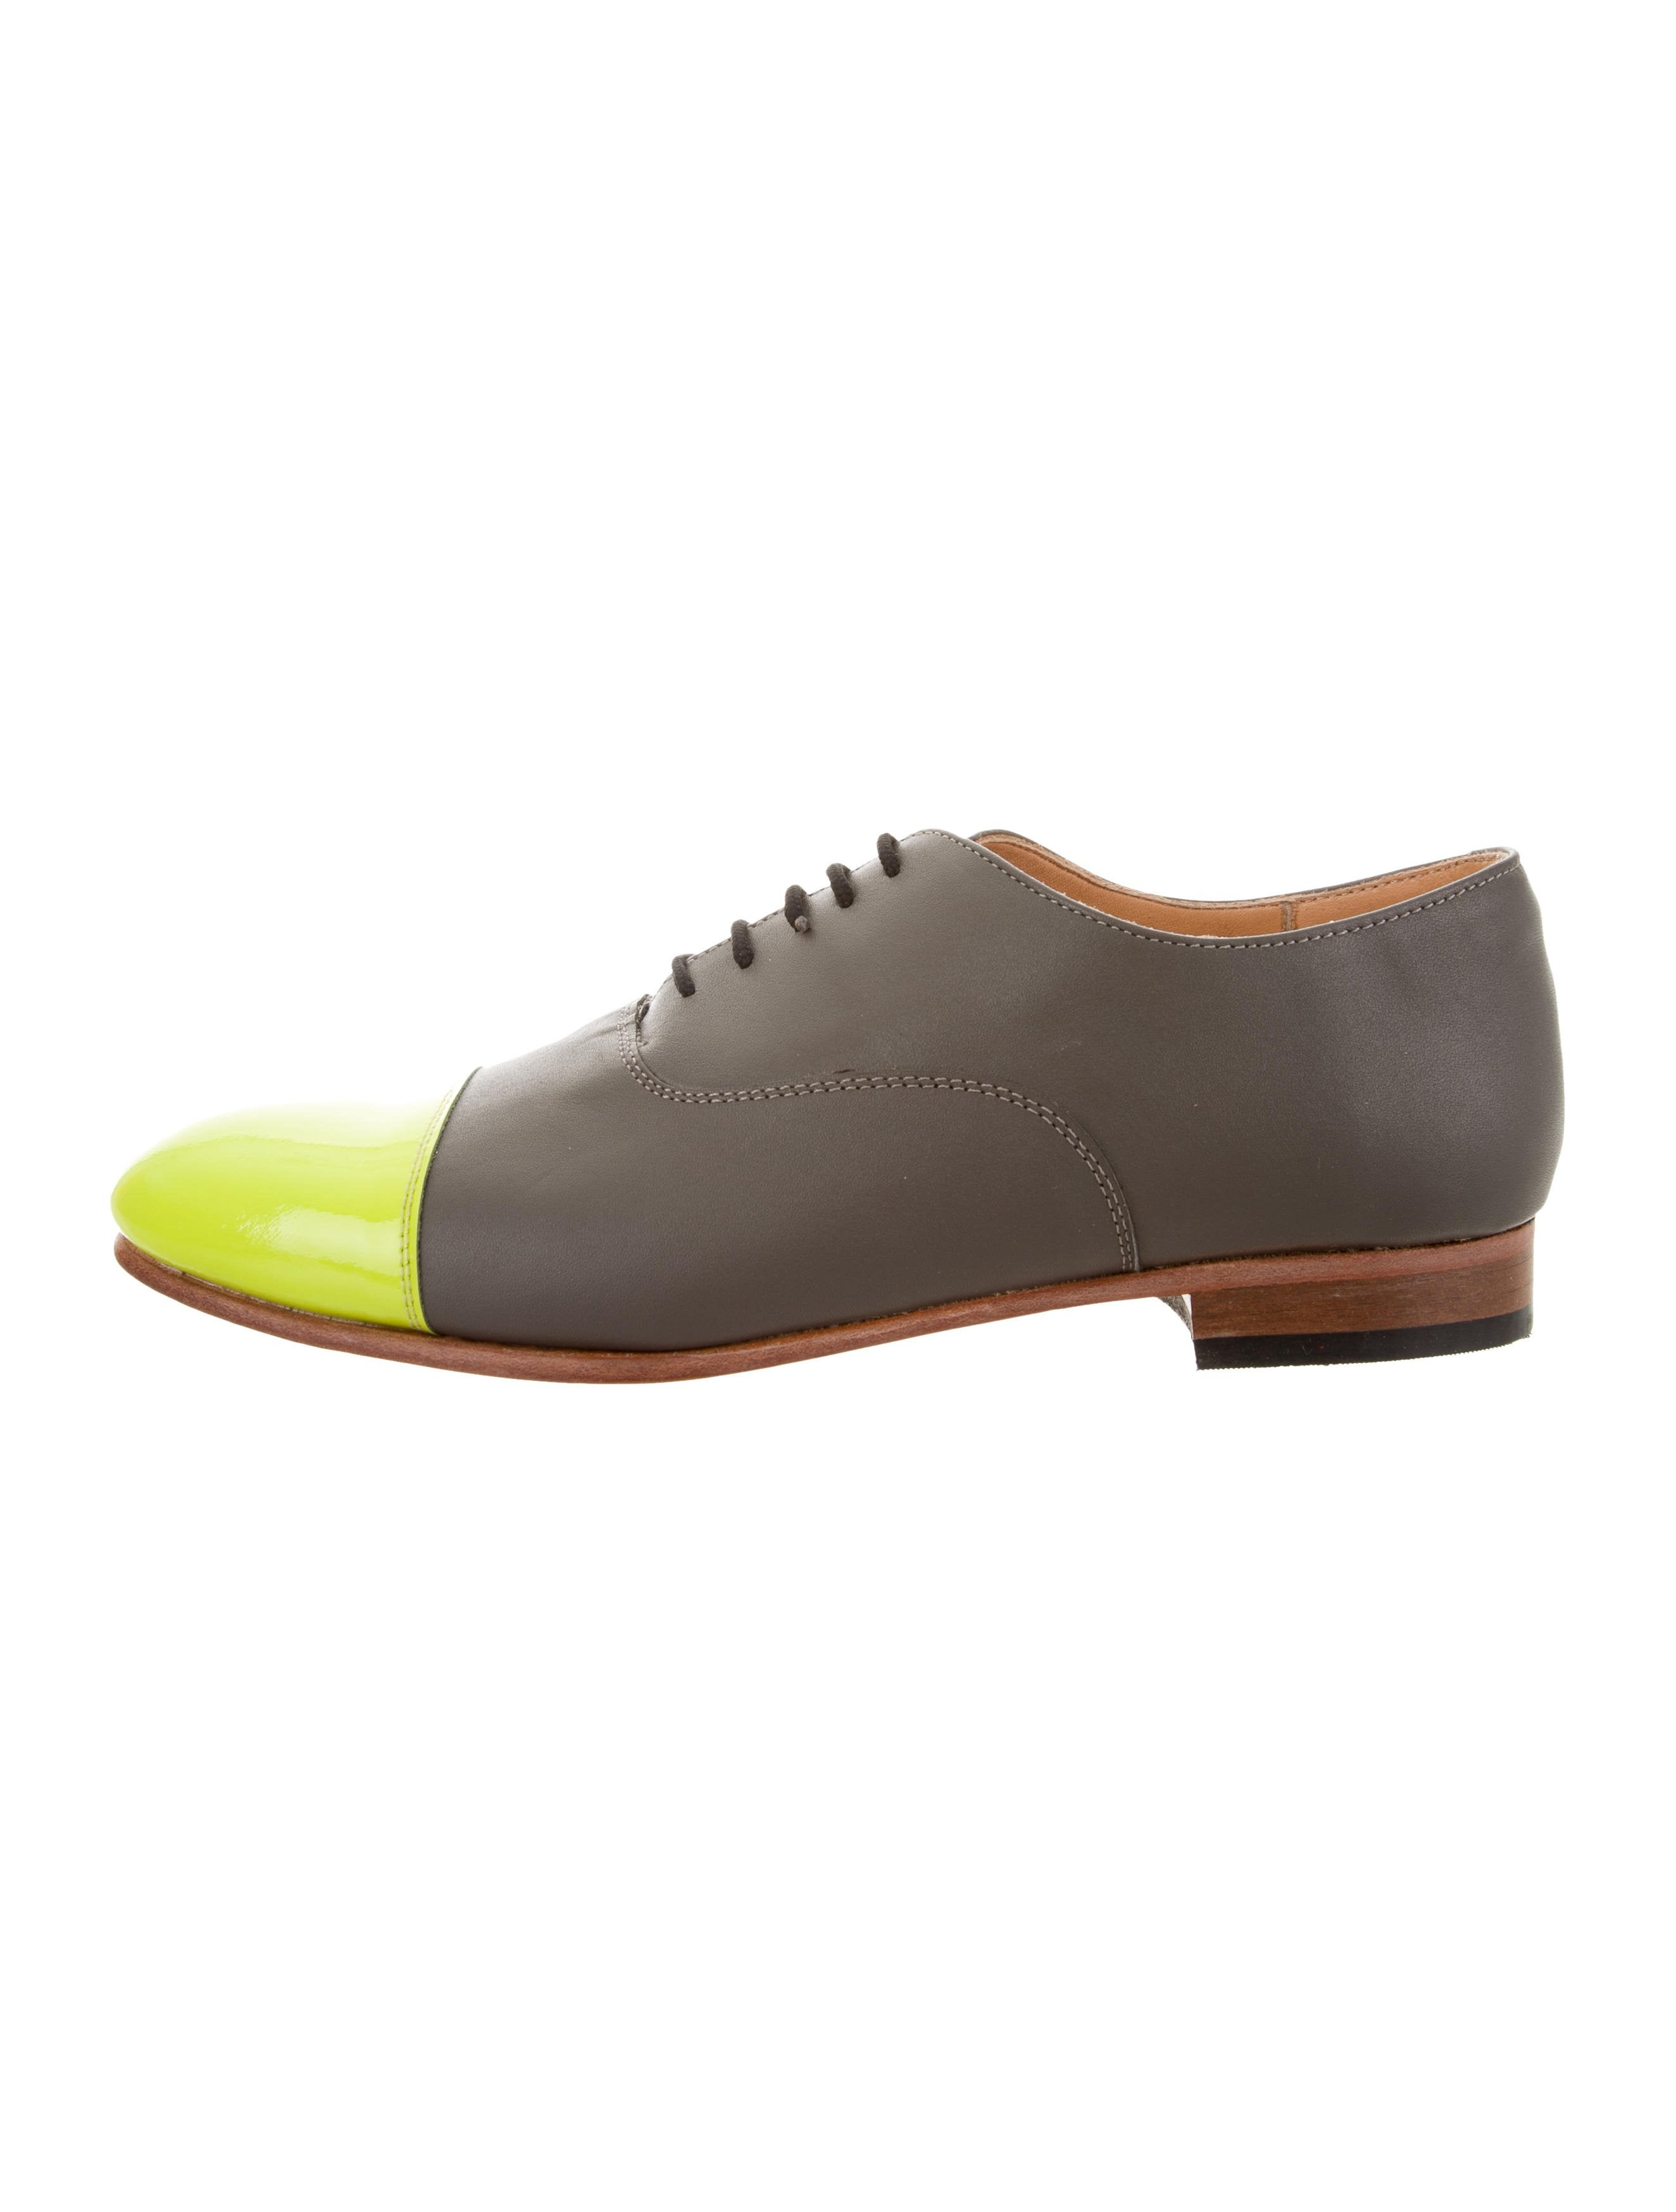 clearance sast Dieppa Restrepo Leather Cap-Toe Oxfords w/ Tags discount codes clearance store buy cheap original discount authentic online xveK38j4